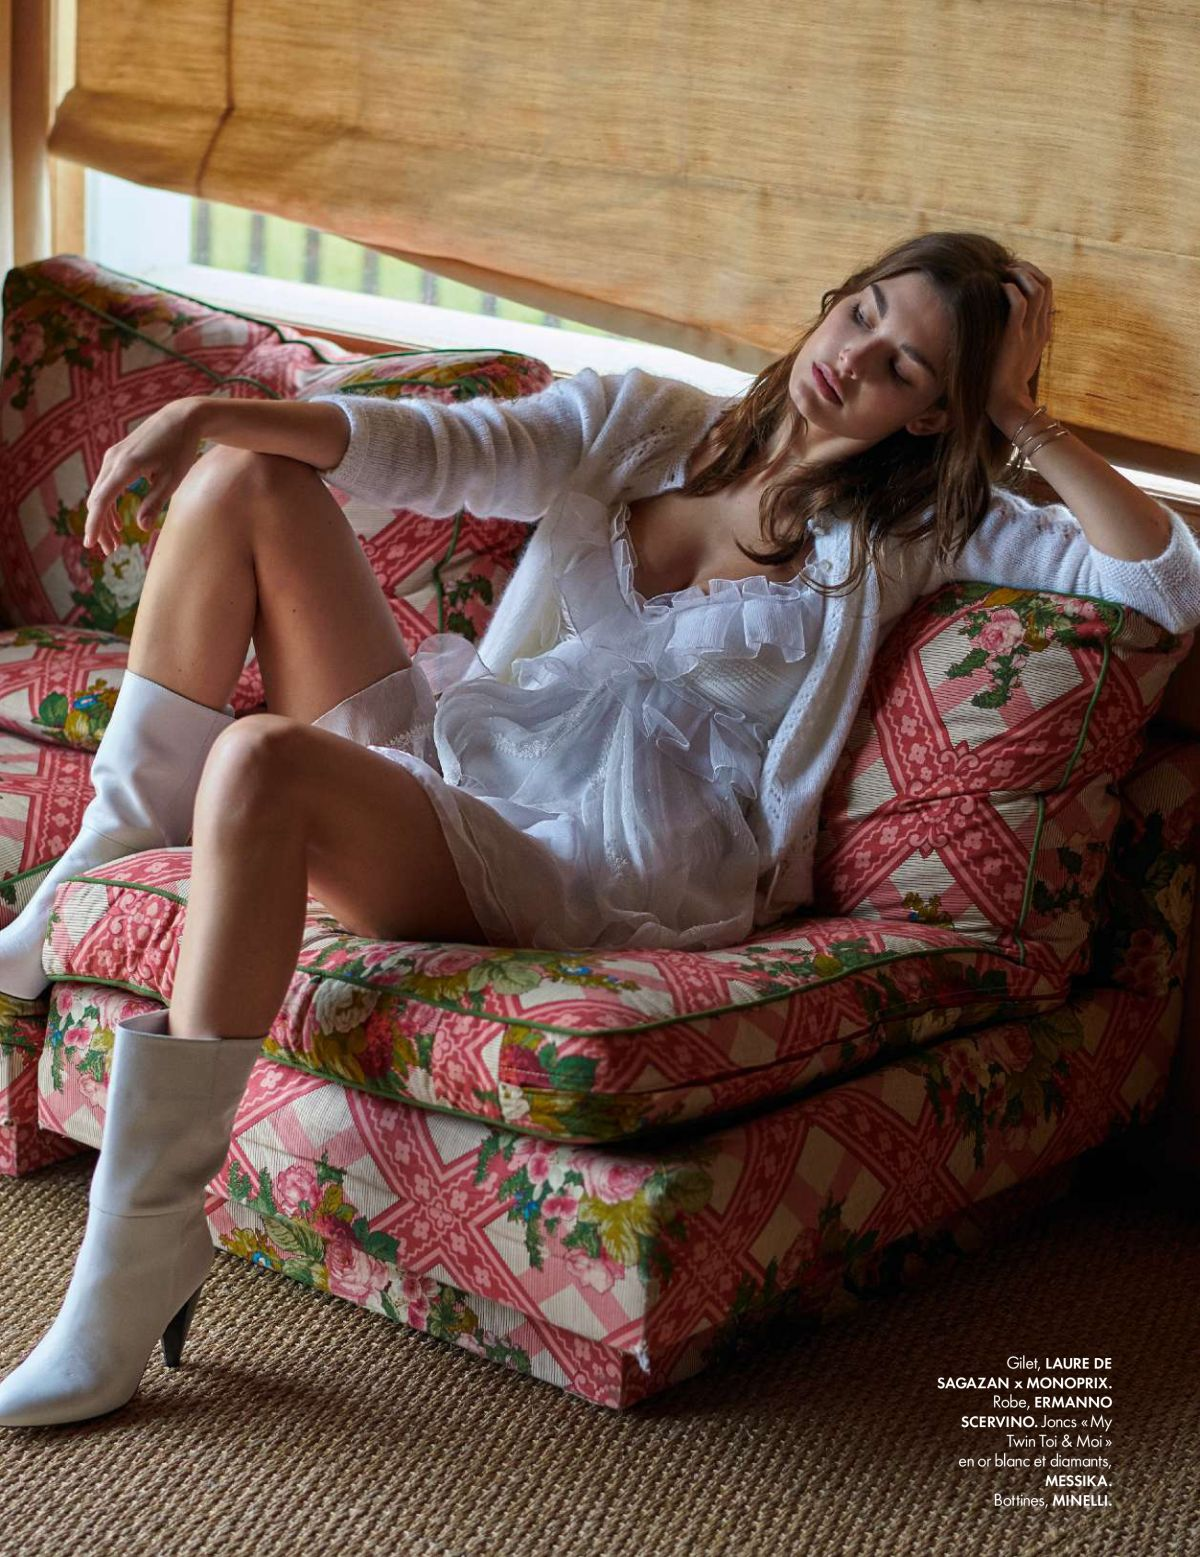 Ophelie Guillermand FRA Ophelie Guillermand FRA new images